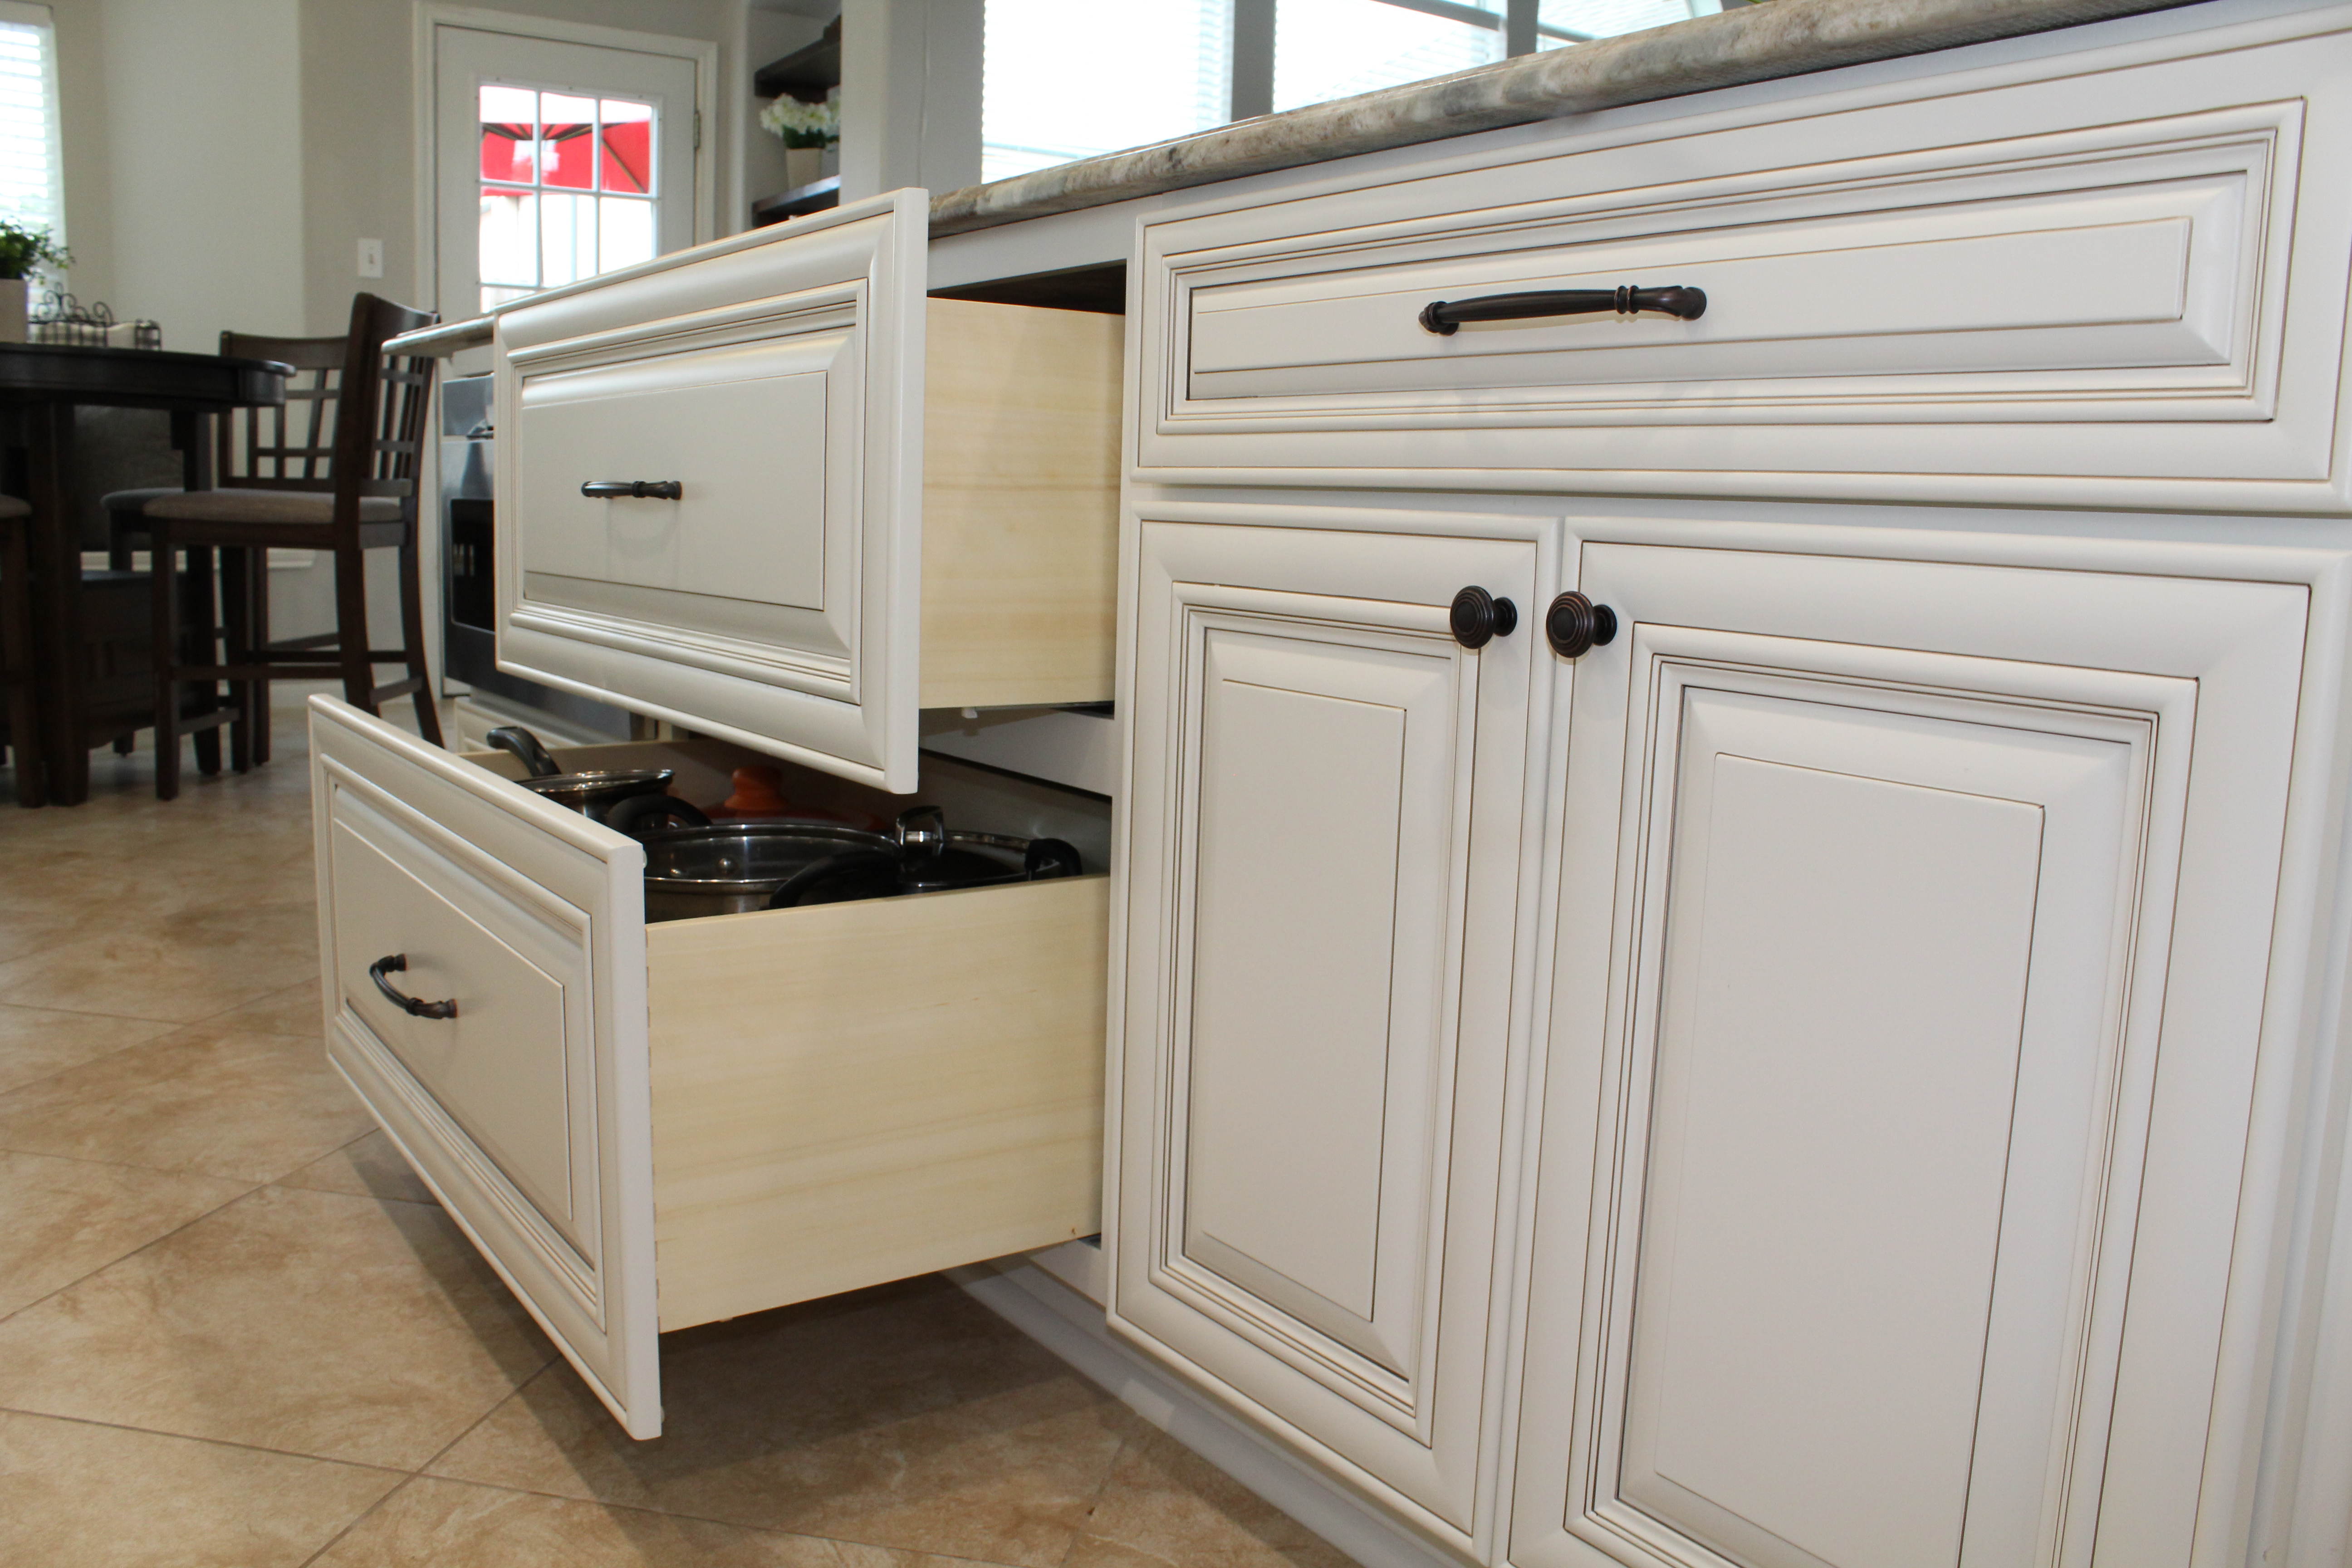 Vintage Oatmeal Cabinetry